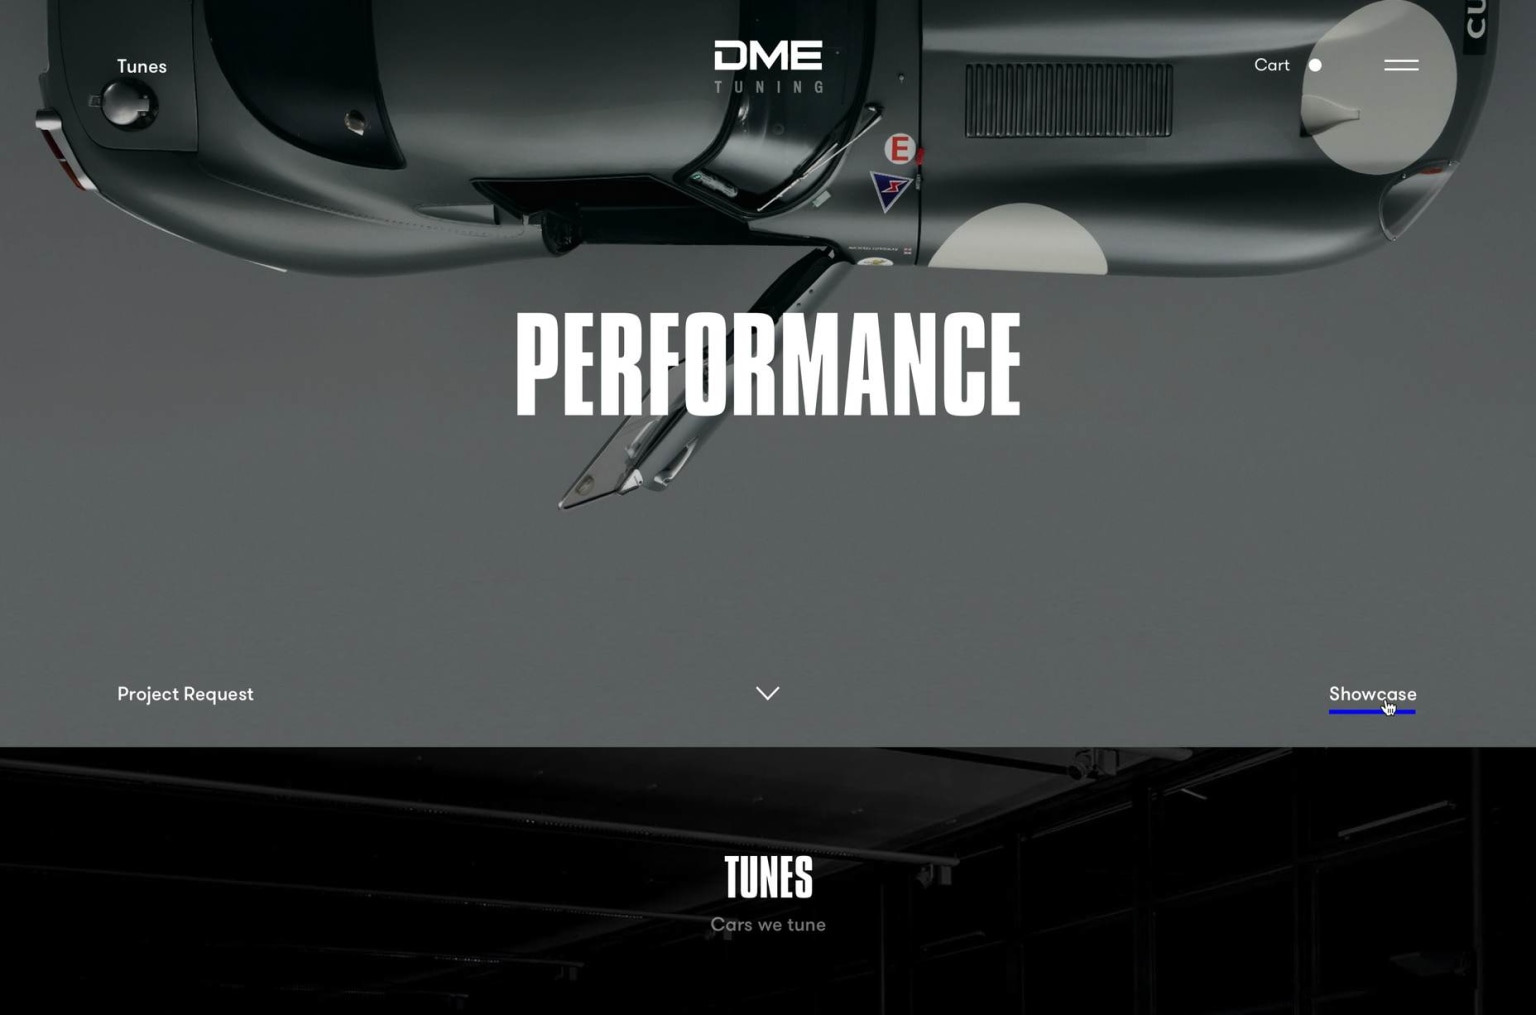 DME Tuning